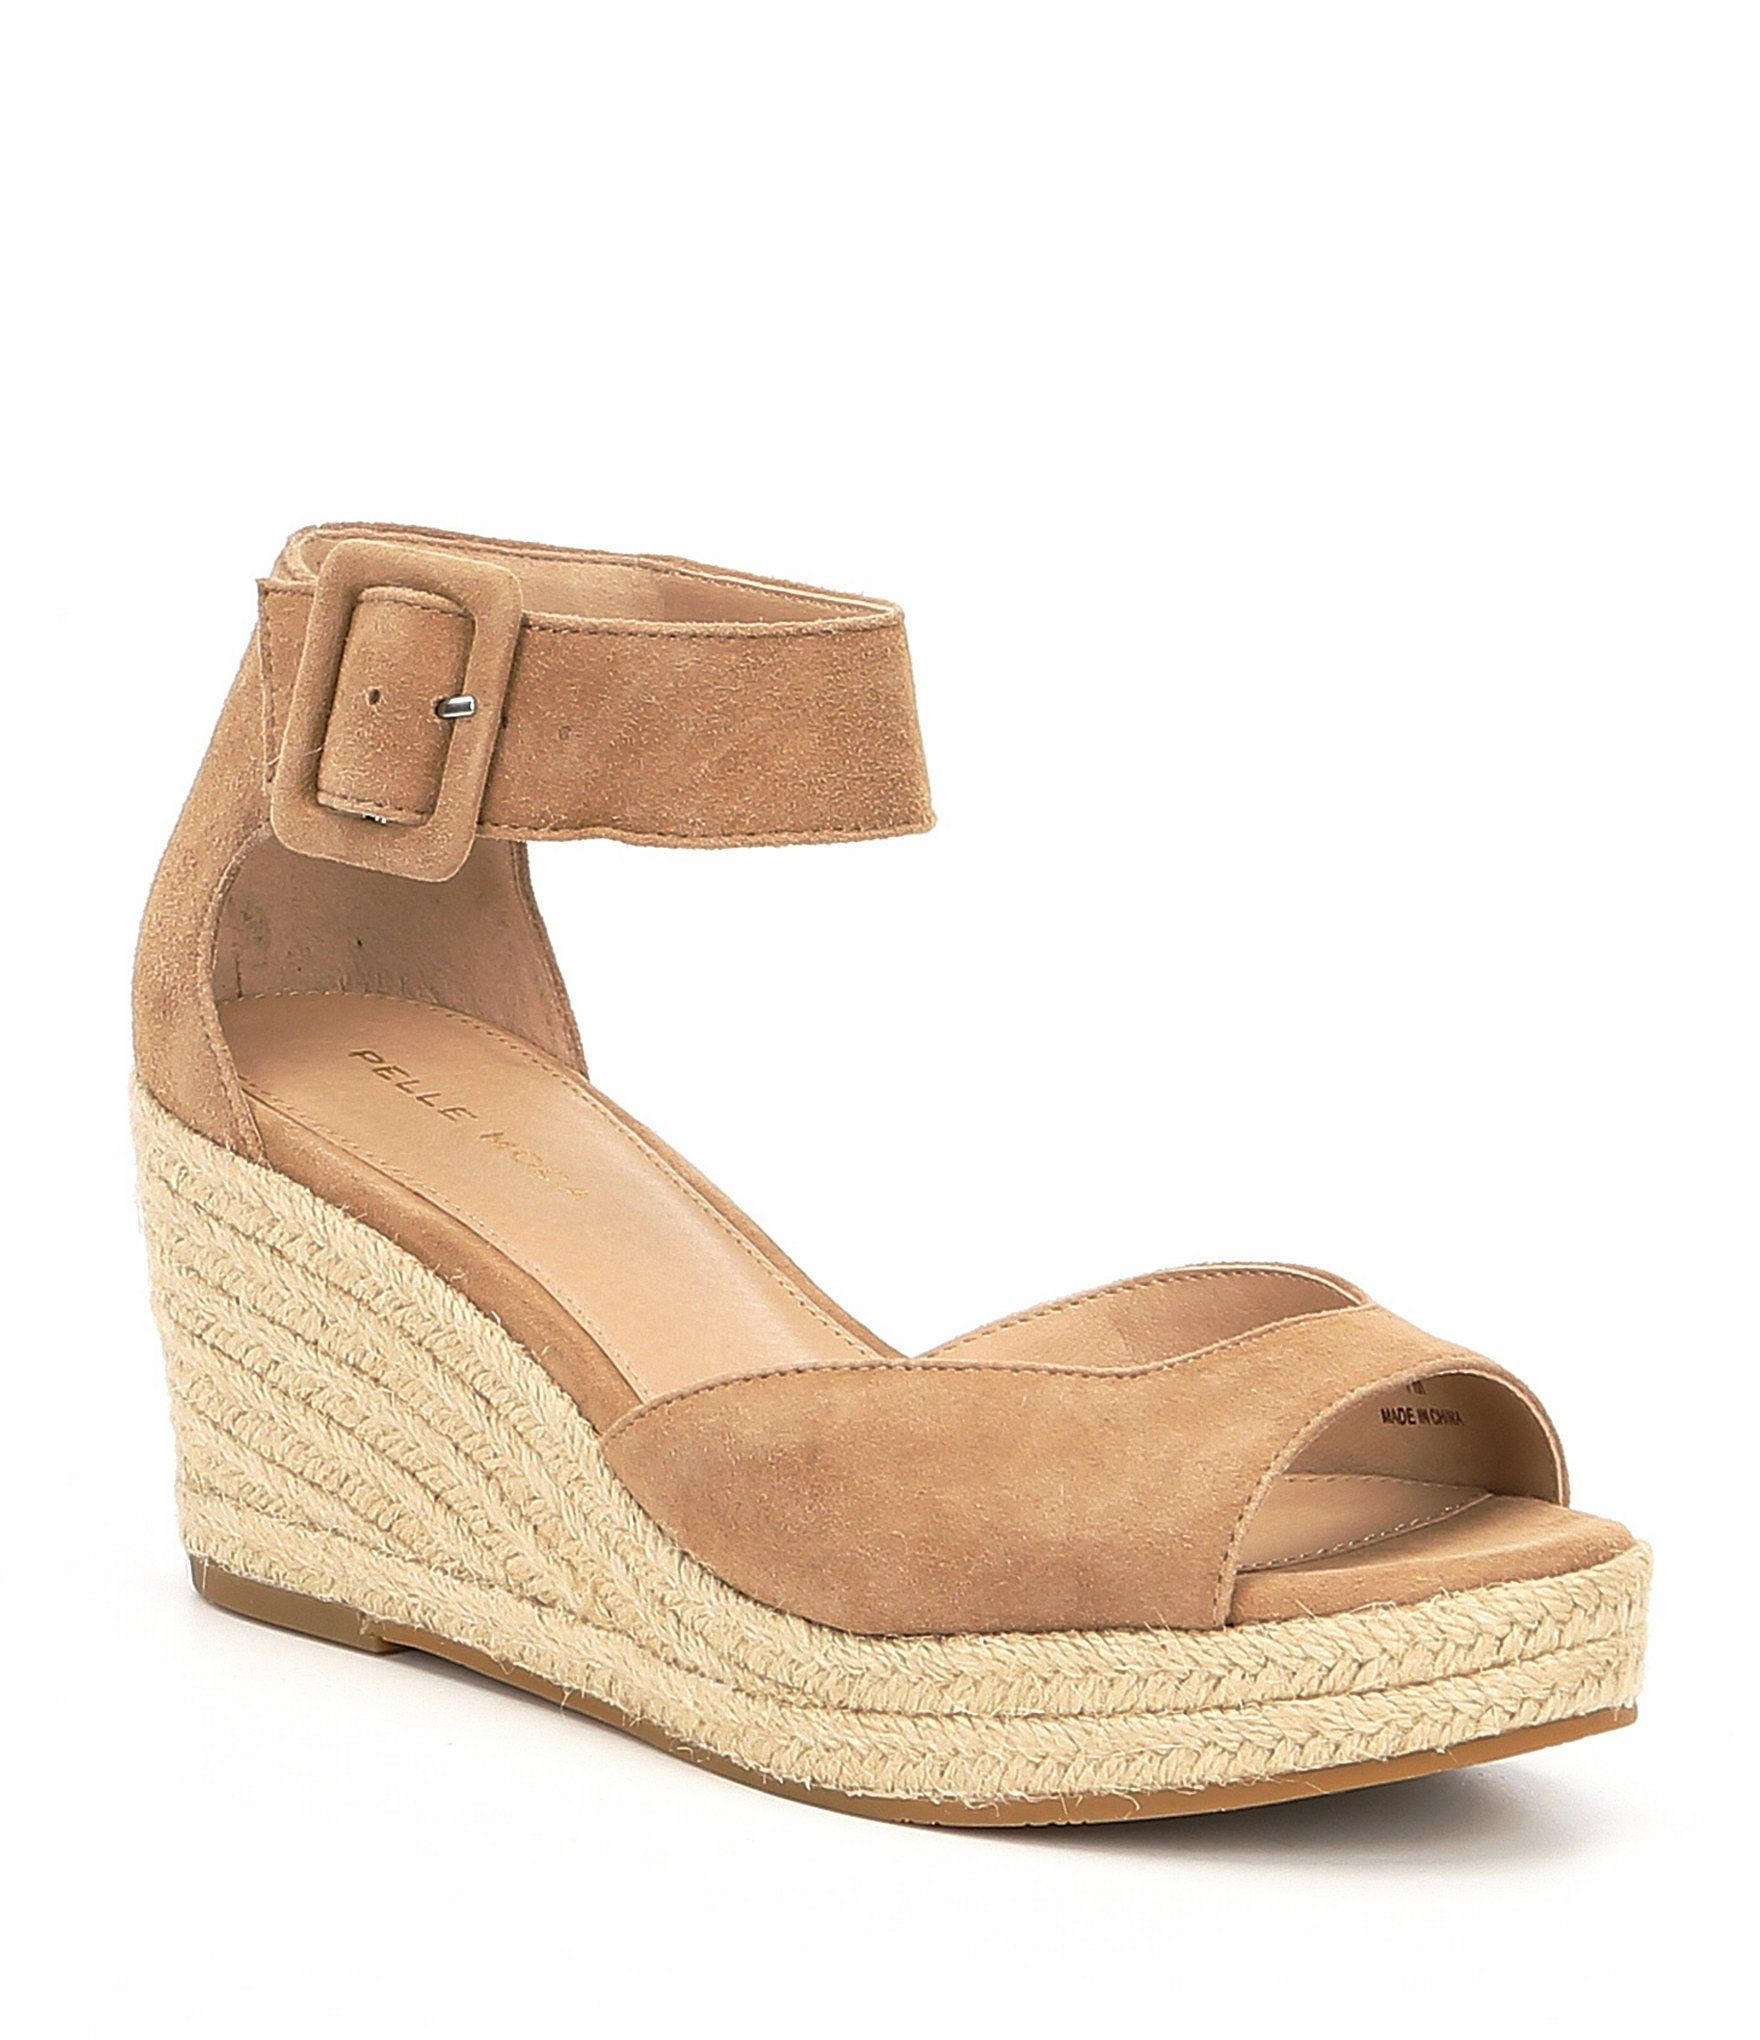 897188311 Shop for Pelle Moda Kauai Espadrille Suede Ankle Strap Wedge Sandals at  Dillards.com. Visit Dillards.com to find clothing, accessories, shoes, ...